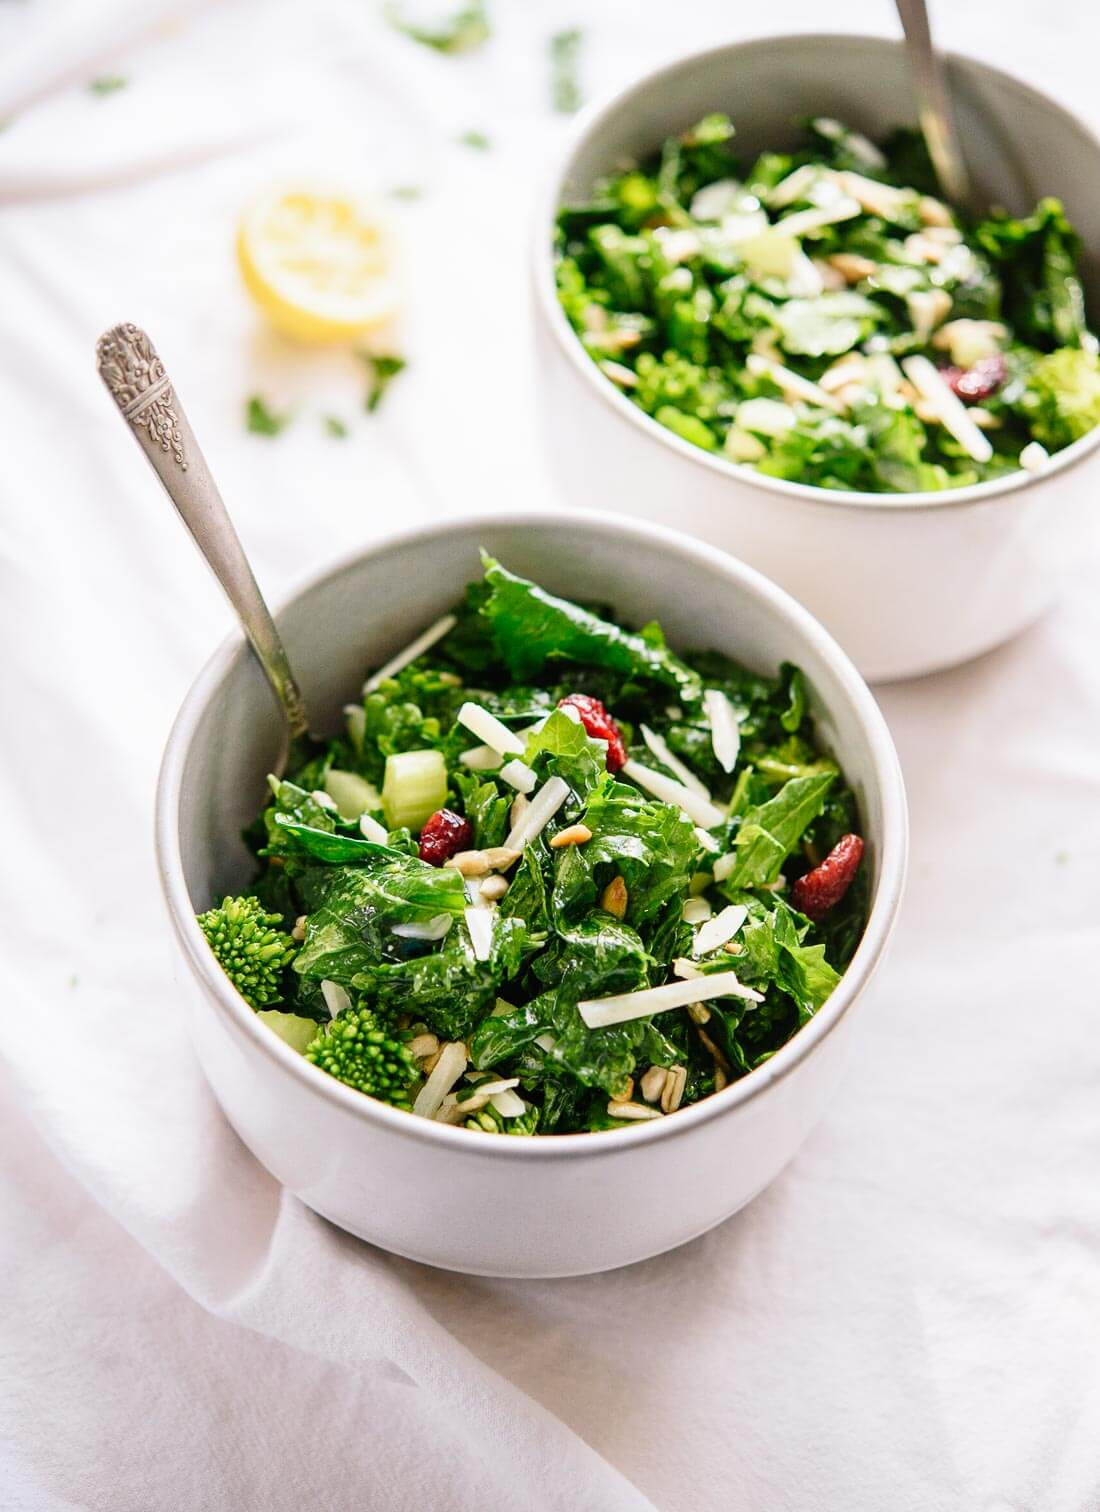 Massaged Broccoli Rabe Salad with Sunflower Seeds & Cranberries